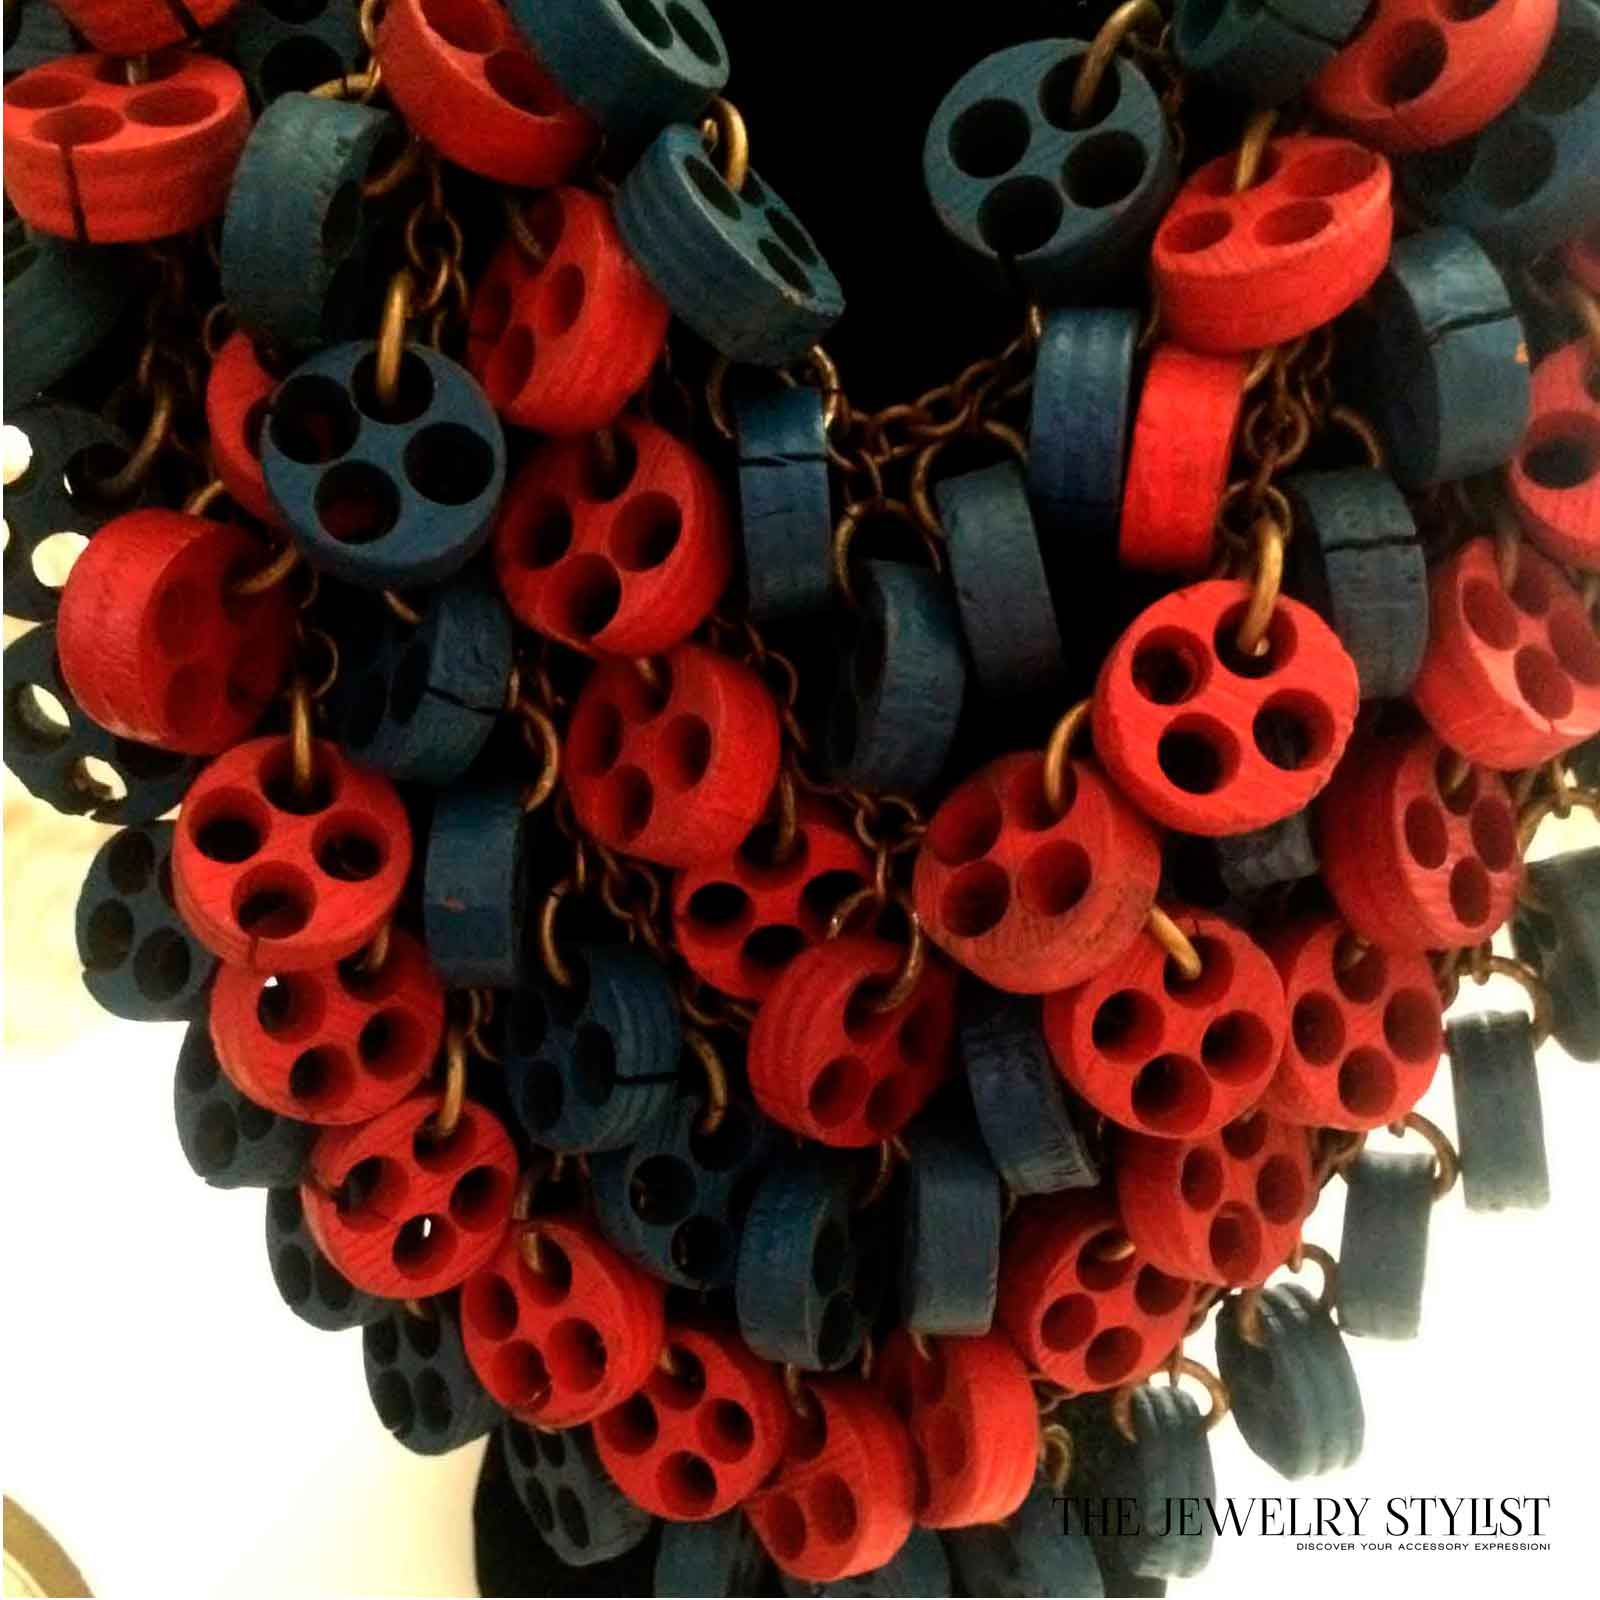 Huge 1930s Statement Necklace Miriam Haskell-esque Close-up